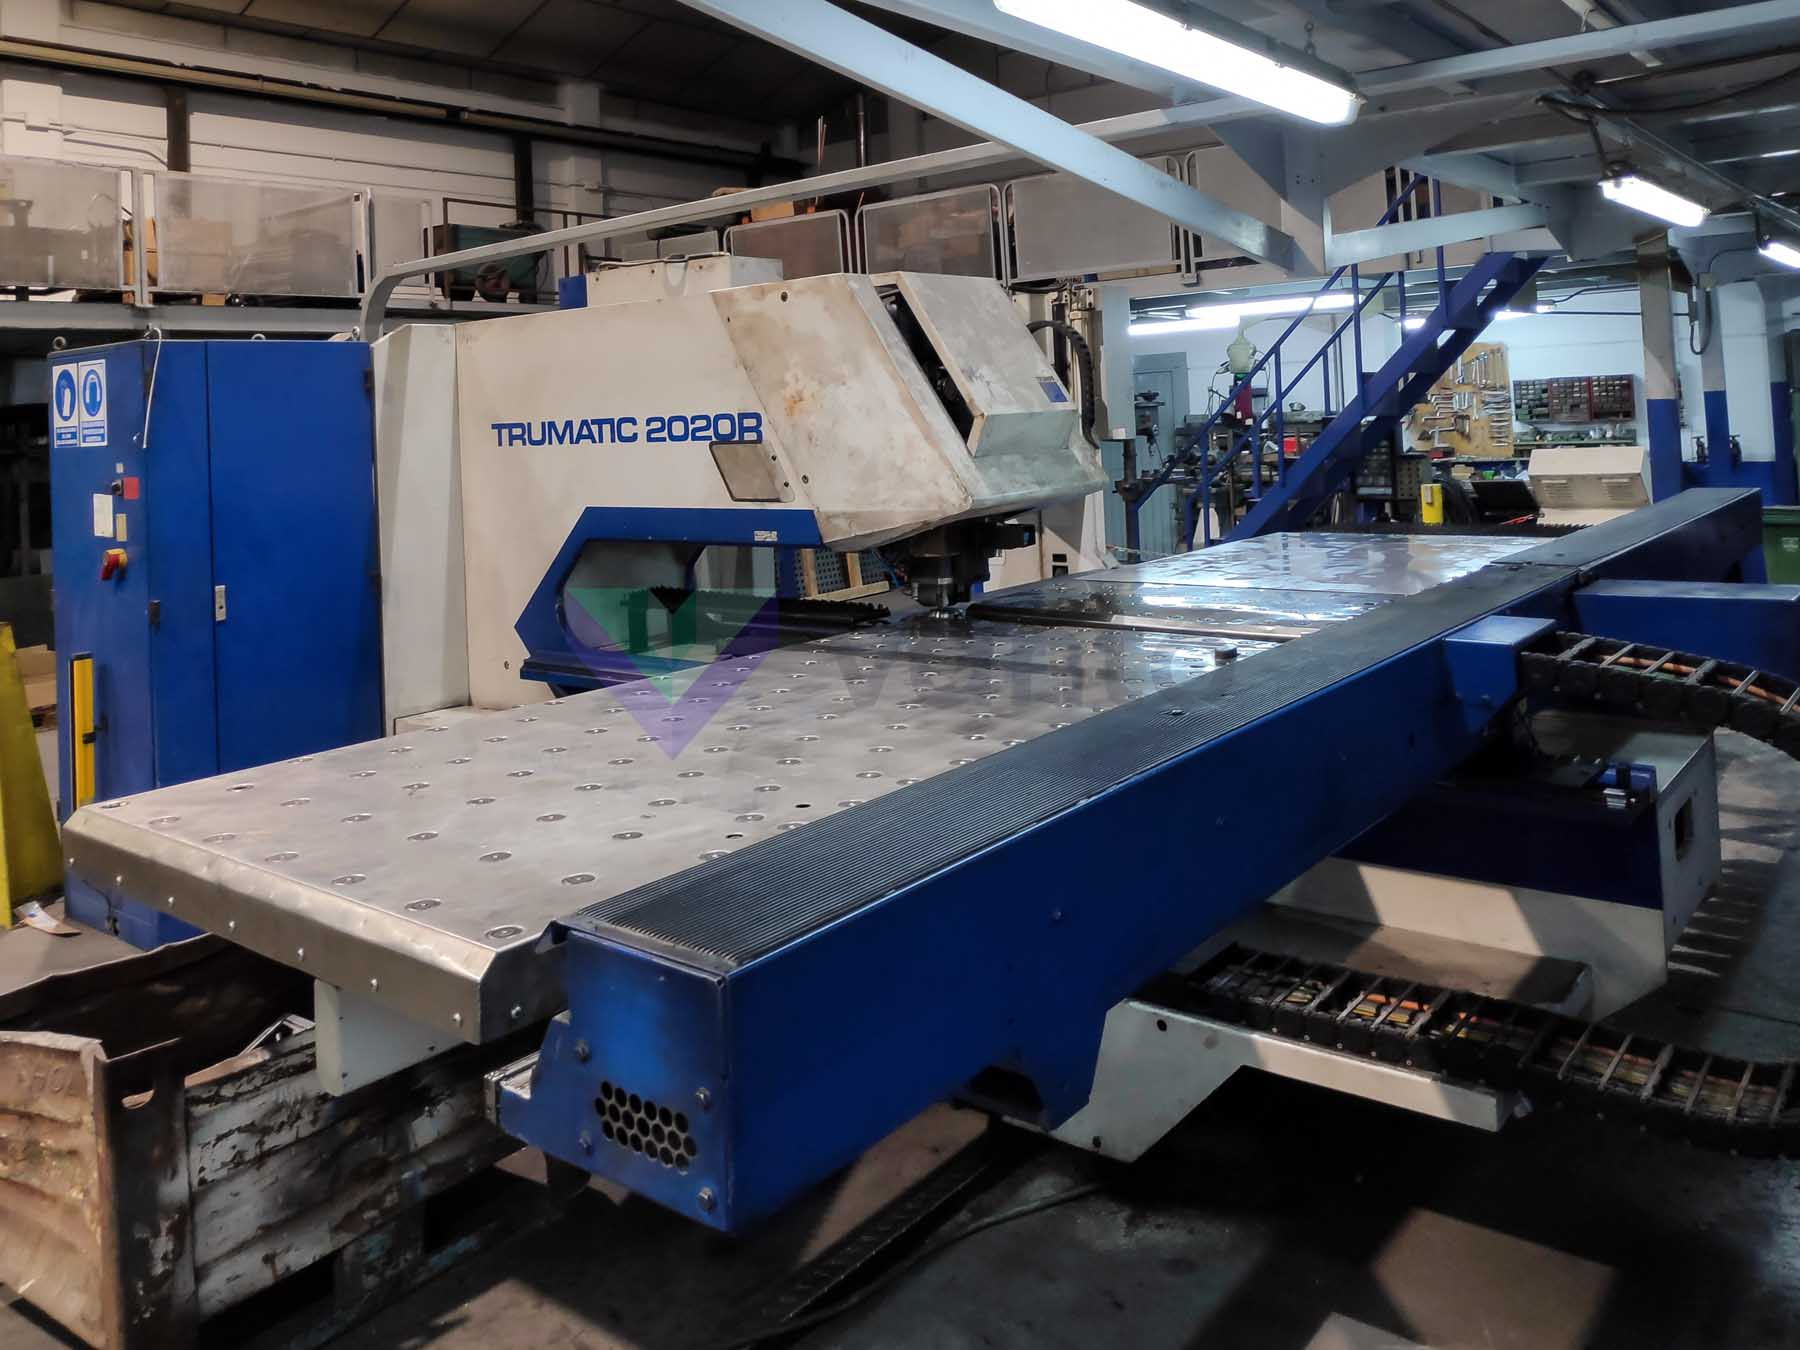 TRUMPF TruPunch 2020 CNC punching machine (2002) id10383